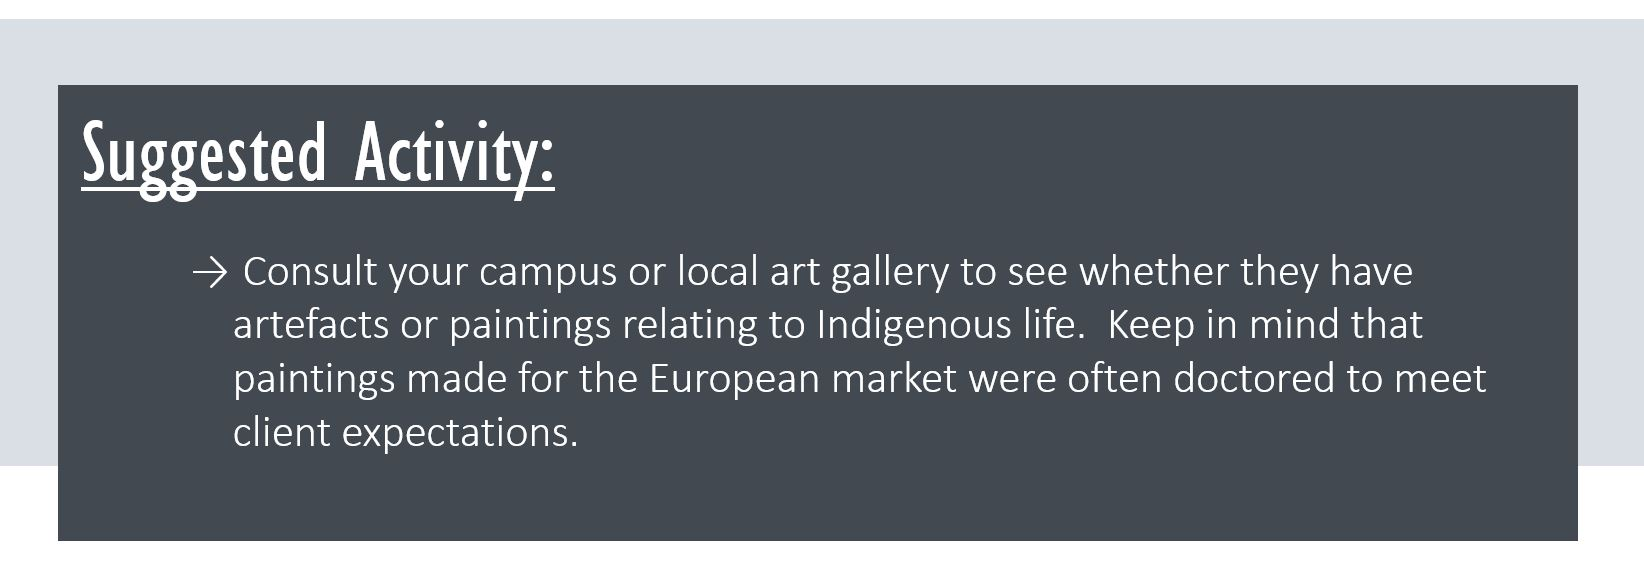 Suggested Activity: Consult your campus or local art gallery to see whether they have artefacts or paintings relating to Indigenous life. Keep in mind that paintings made for the European market were often doctored to meet client expectations.